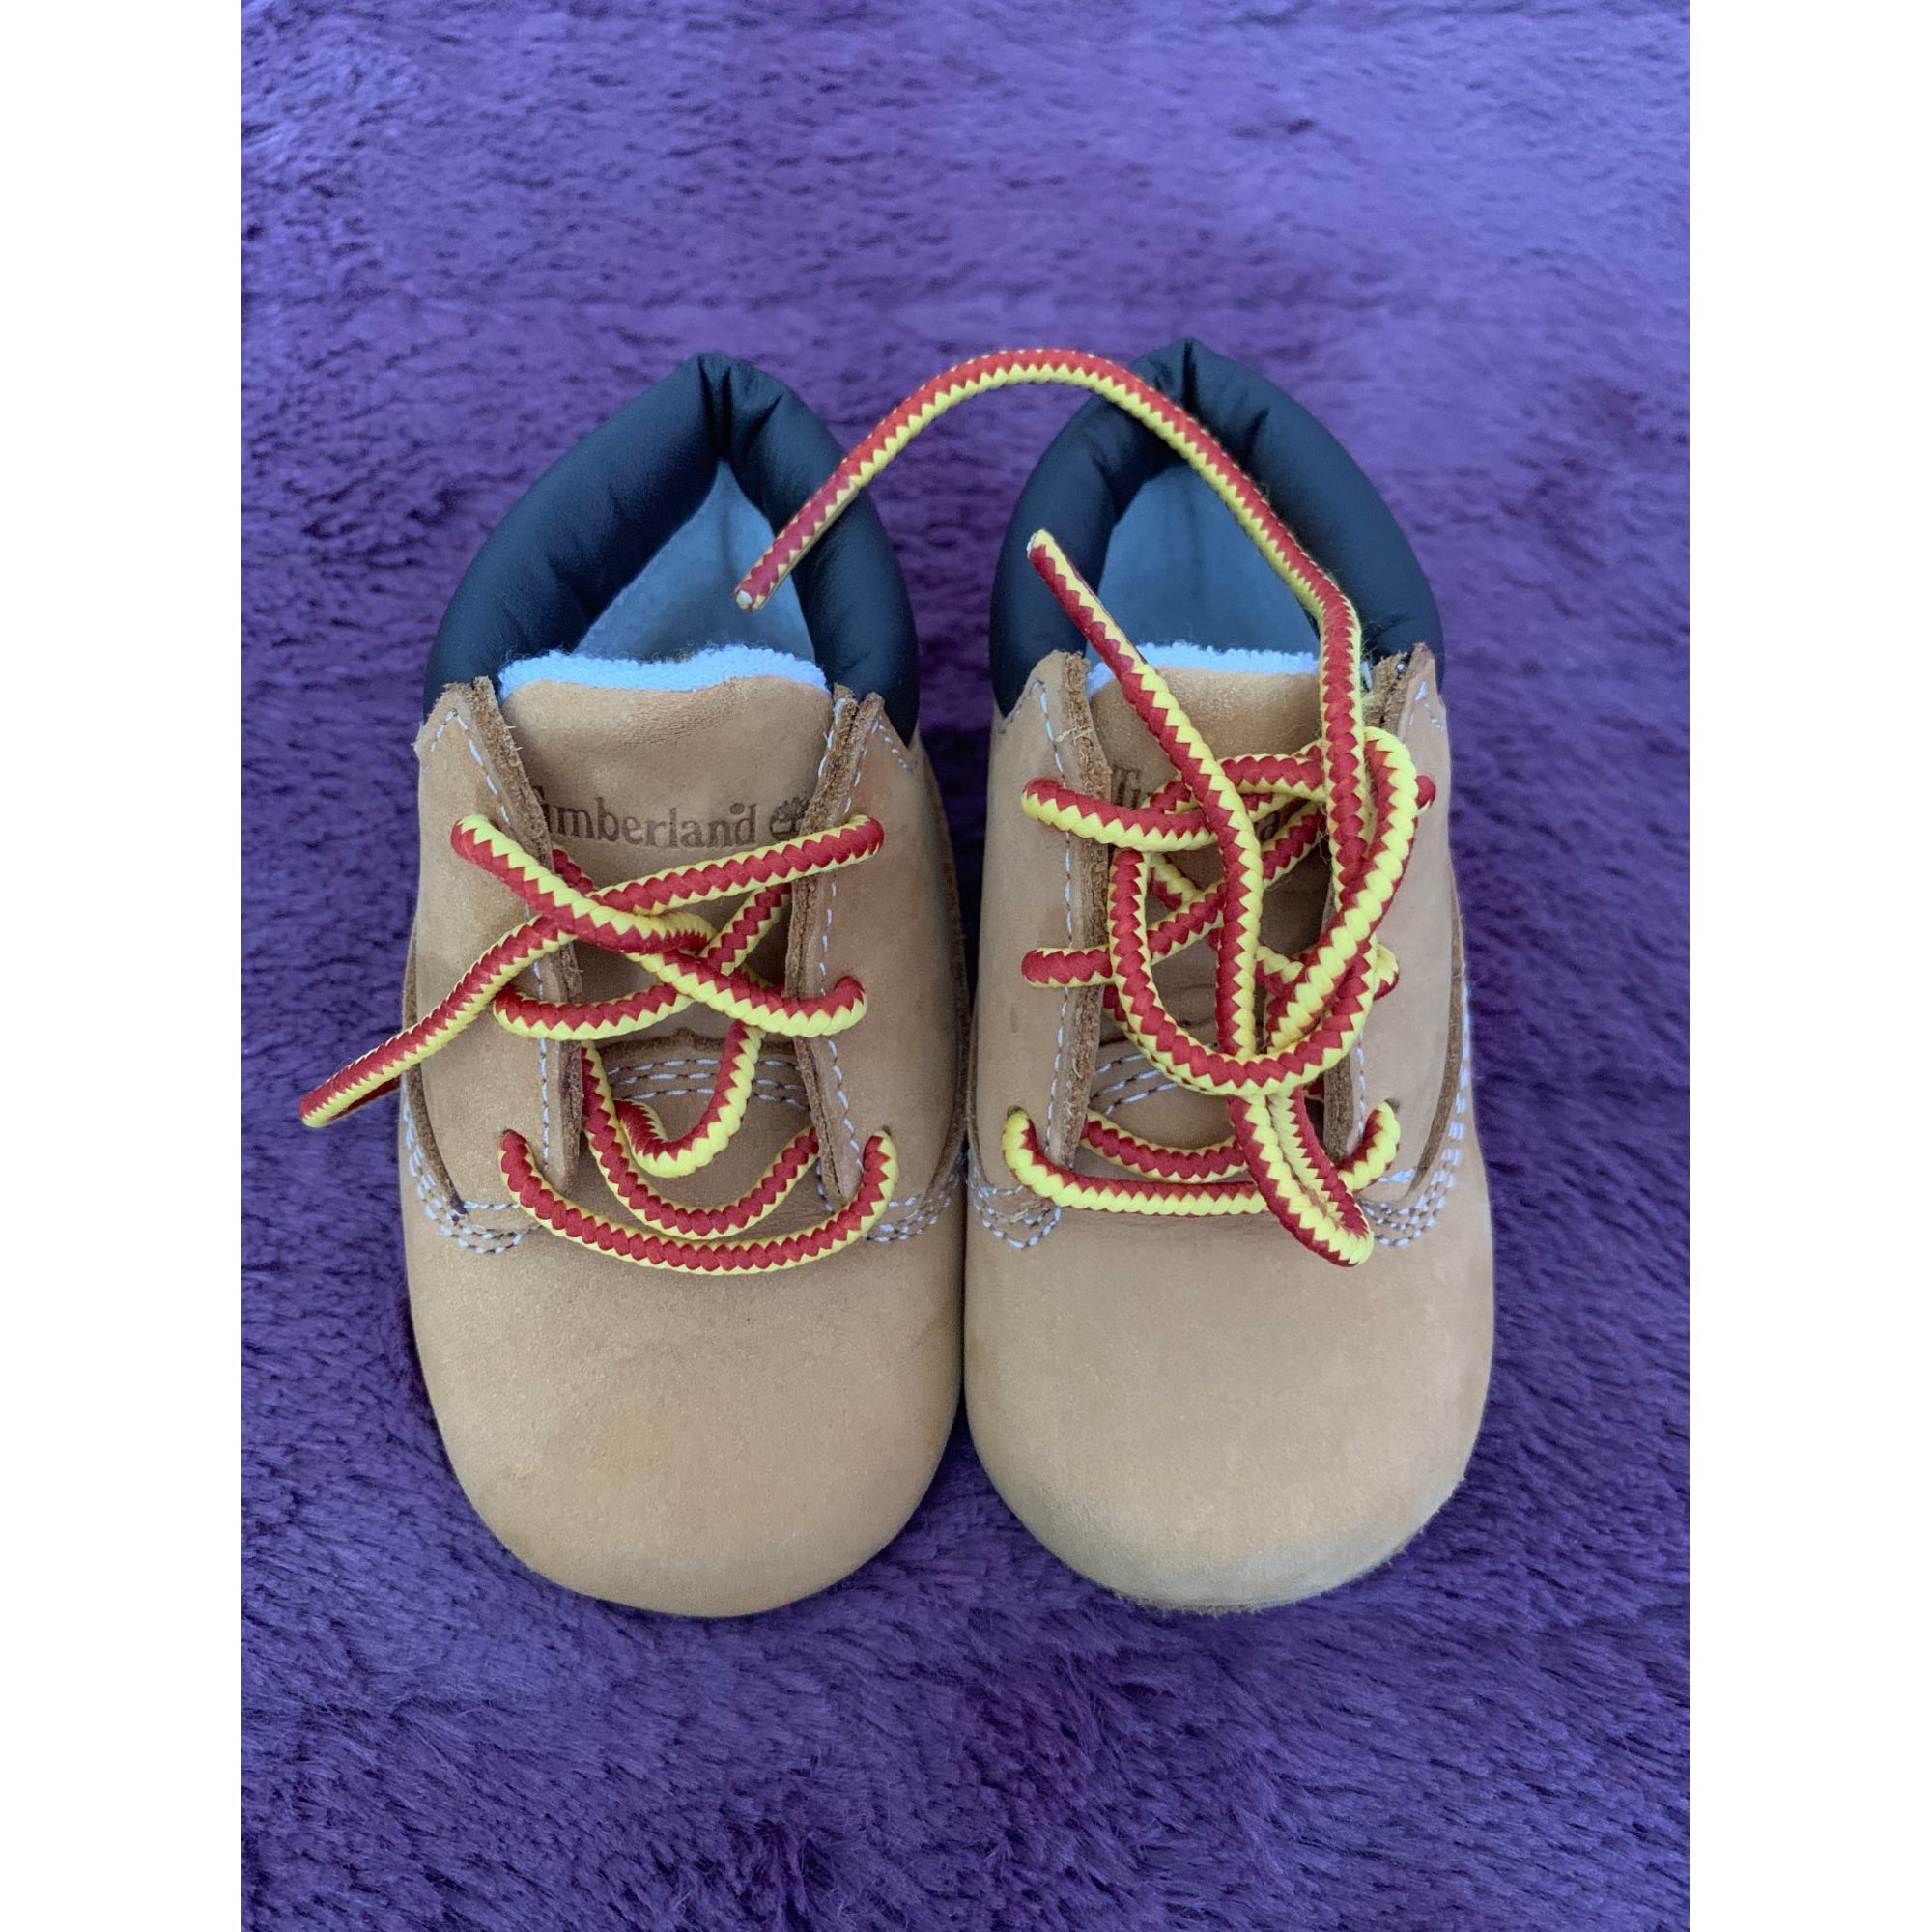 Chaussons TIMBERLAND Beige, camel